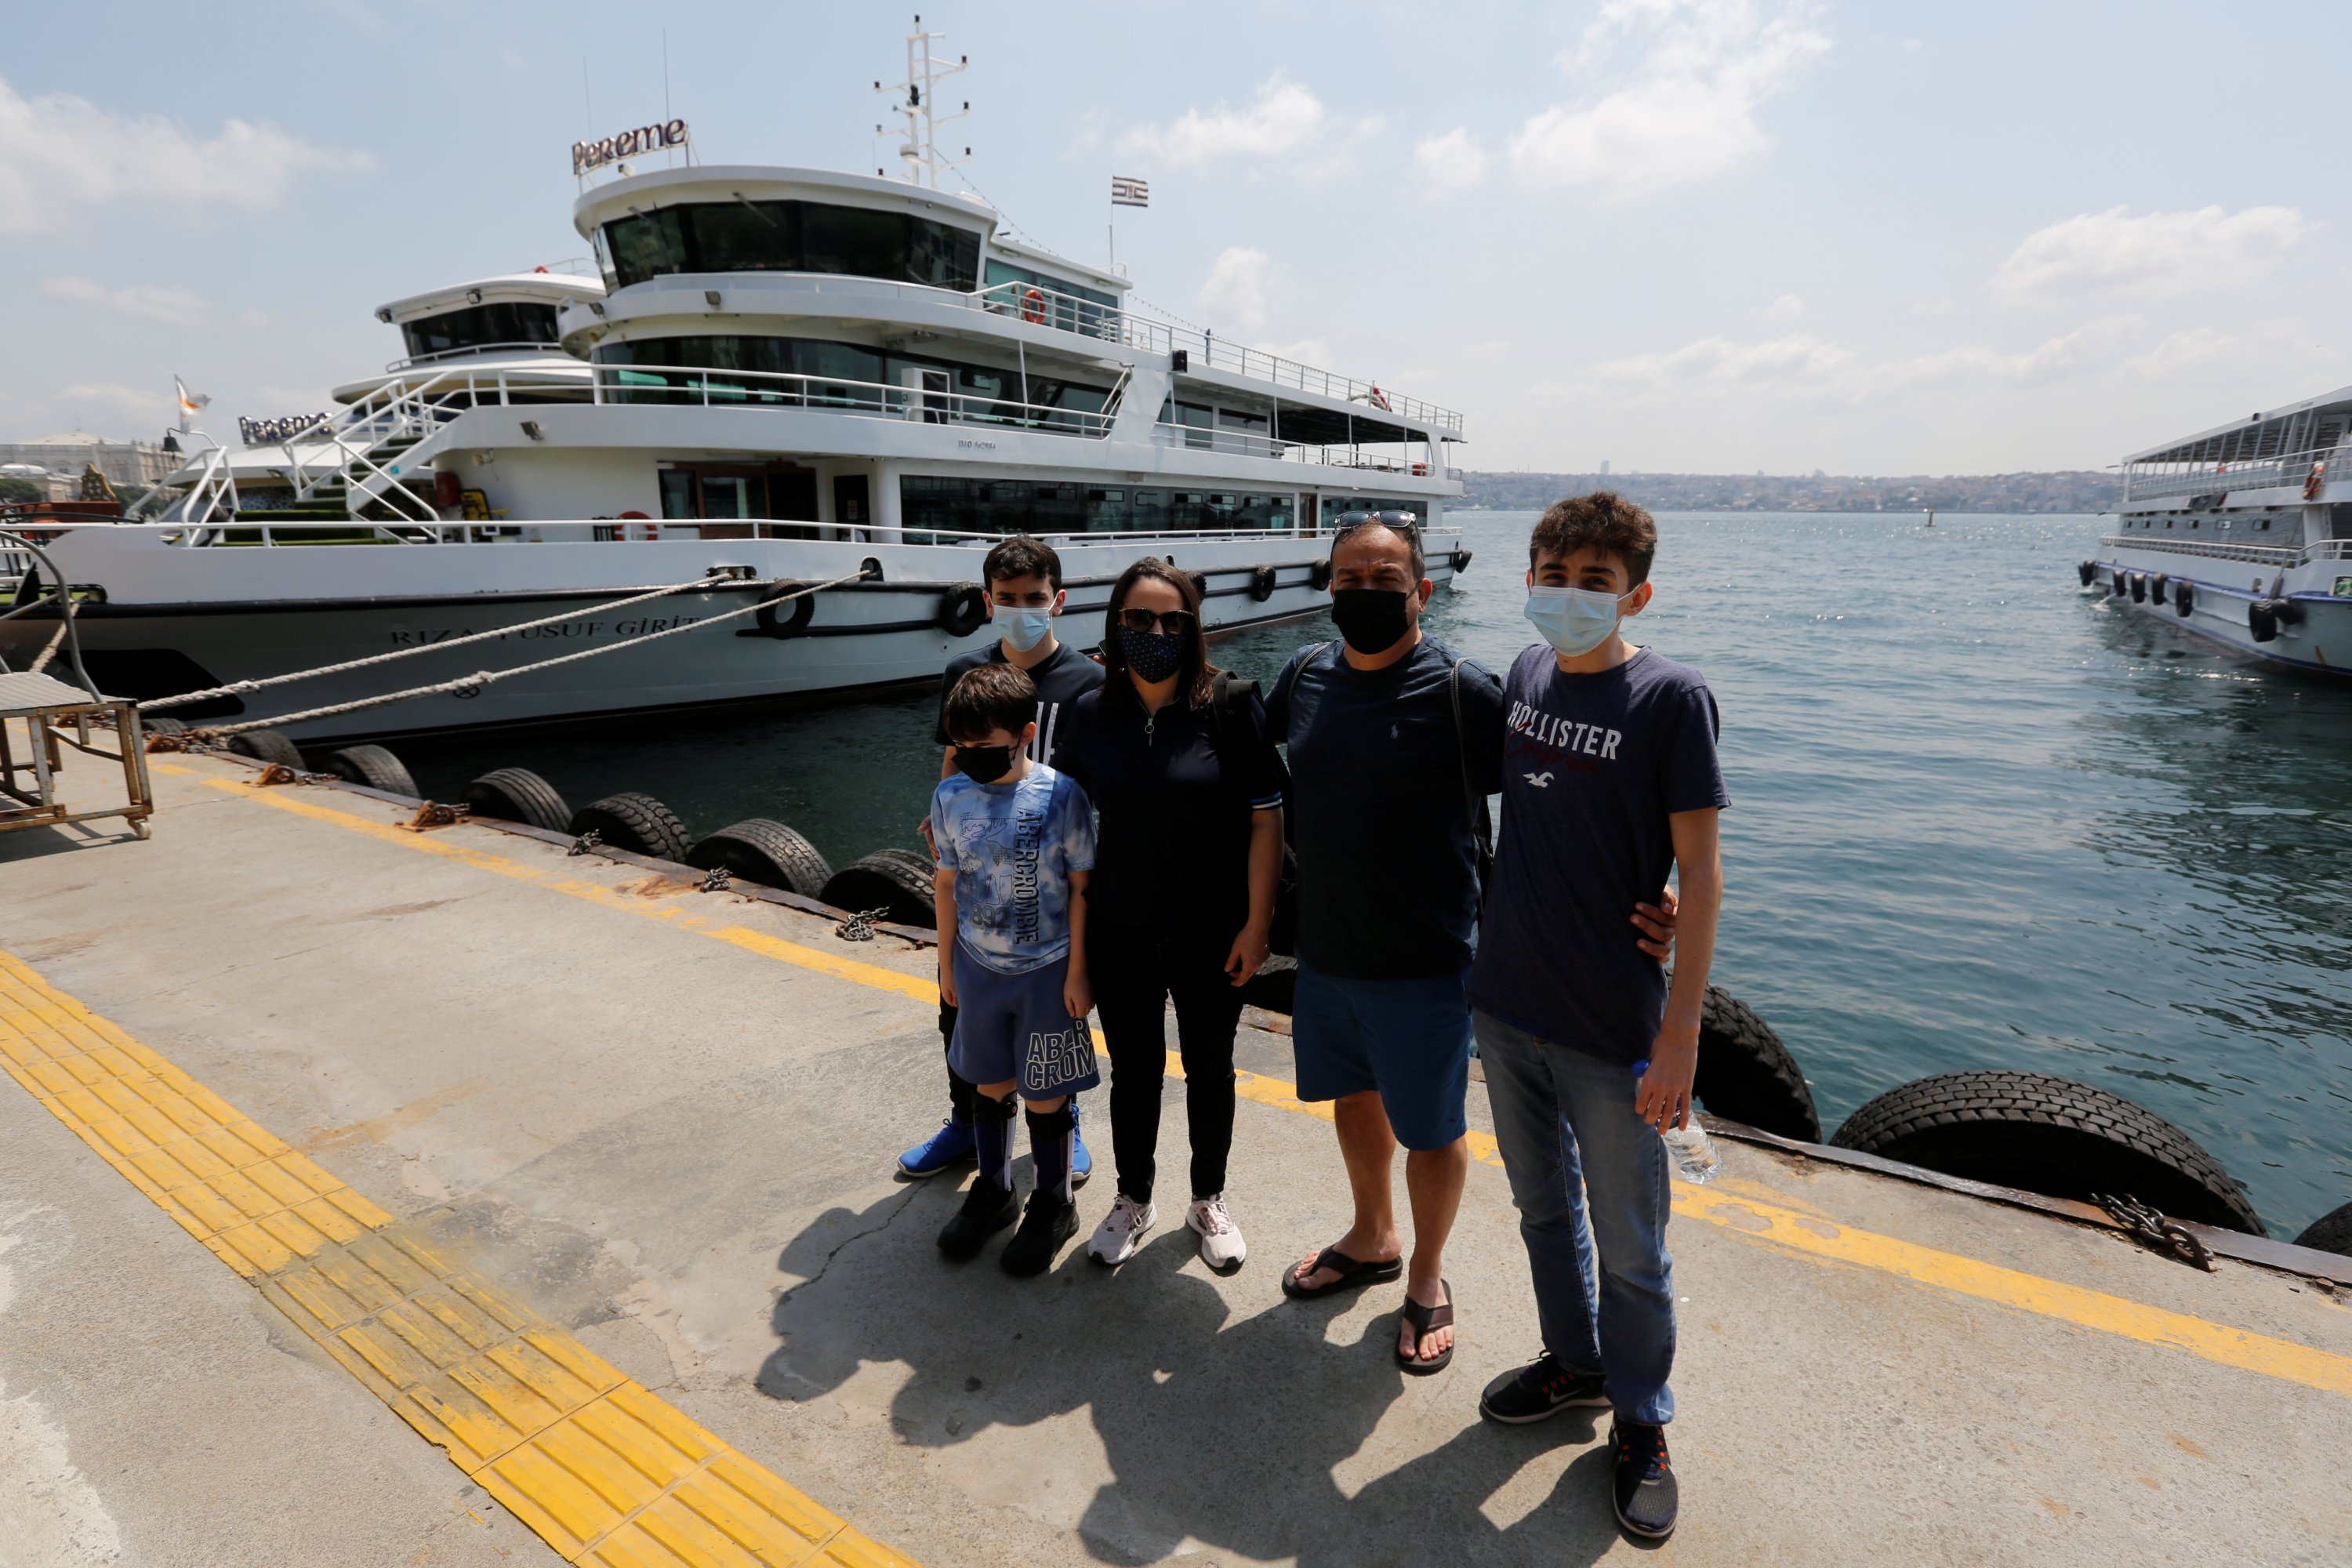 Jordanian couple Omar Zahra and Ghader Zahra pose with their children after a boat tour on the Bosporus in Istanbul, Turkey July 12, 2021. (Reuters Photo)